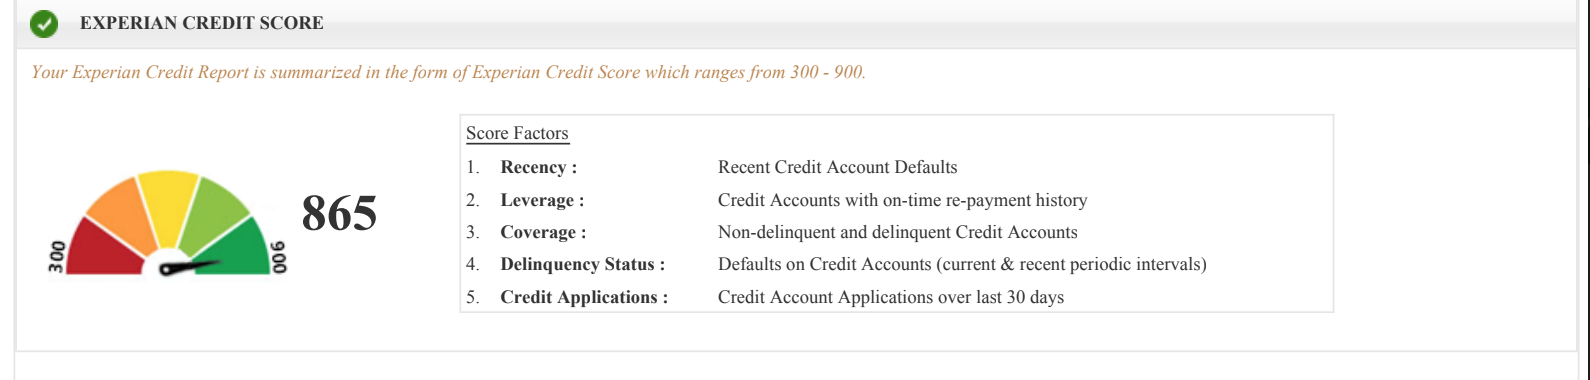 loan rejection affect credit score